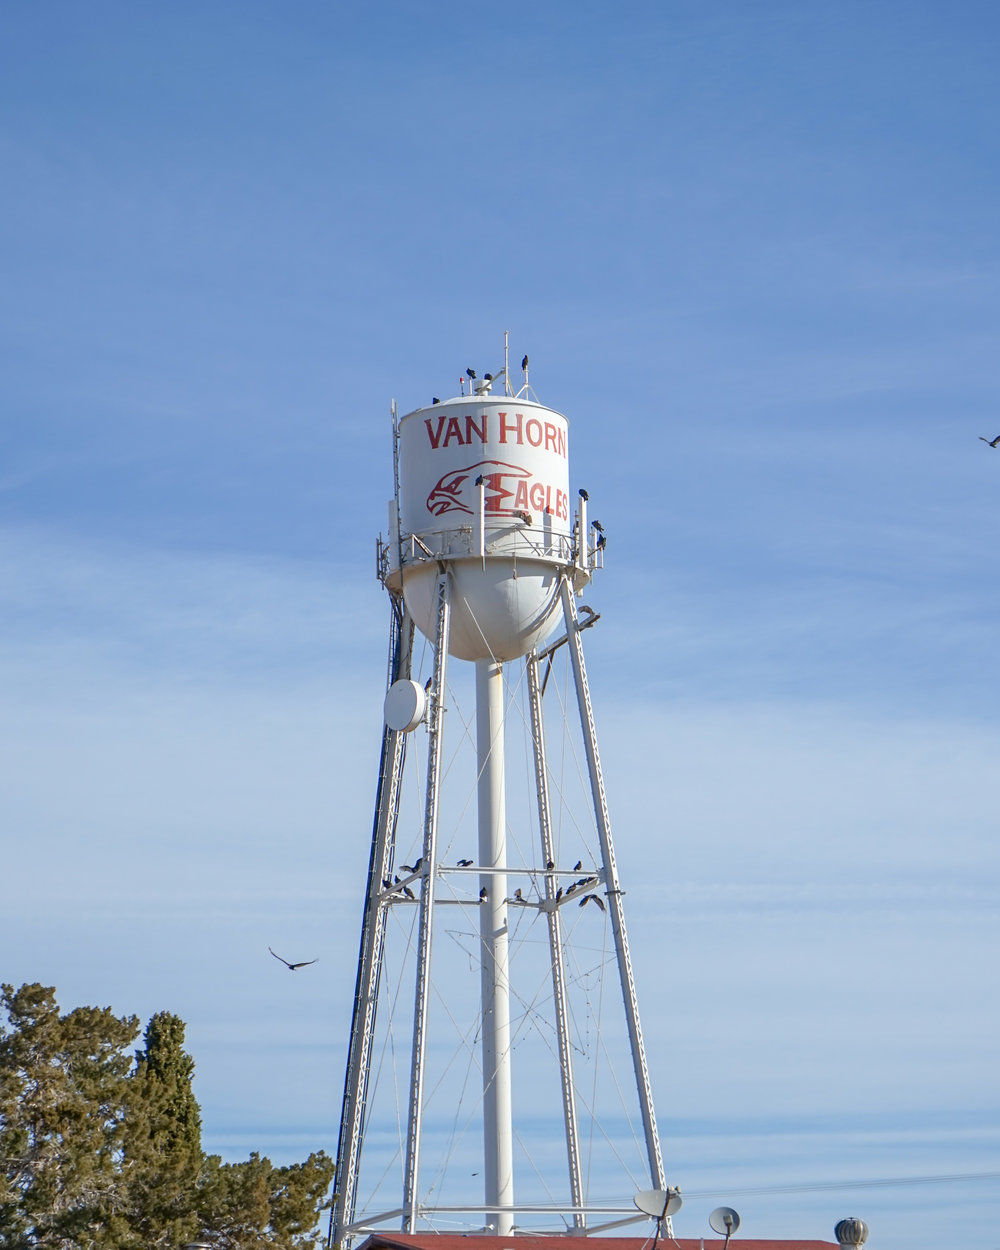 Van Horn Water Tower